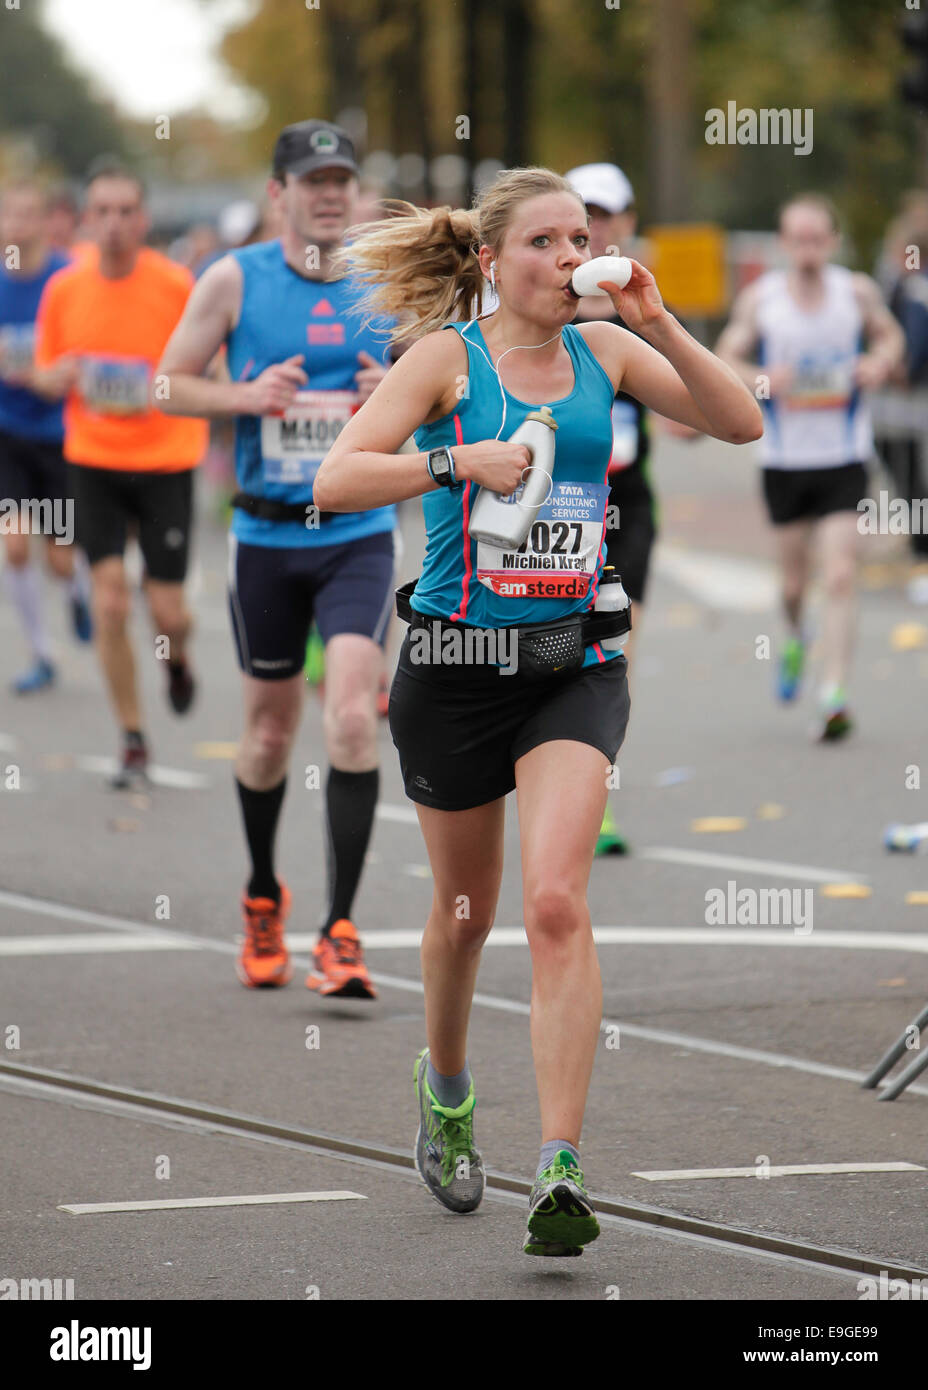 marathon runners at the amsterdam marathon october 2014 - Stock Image